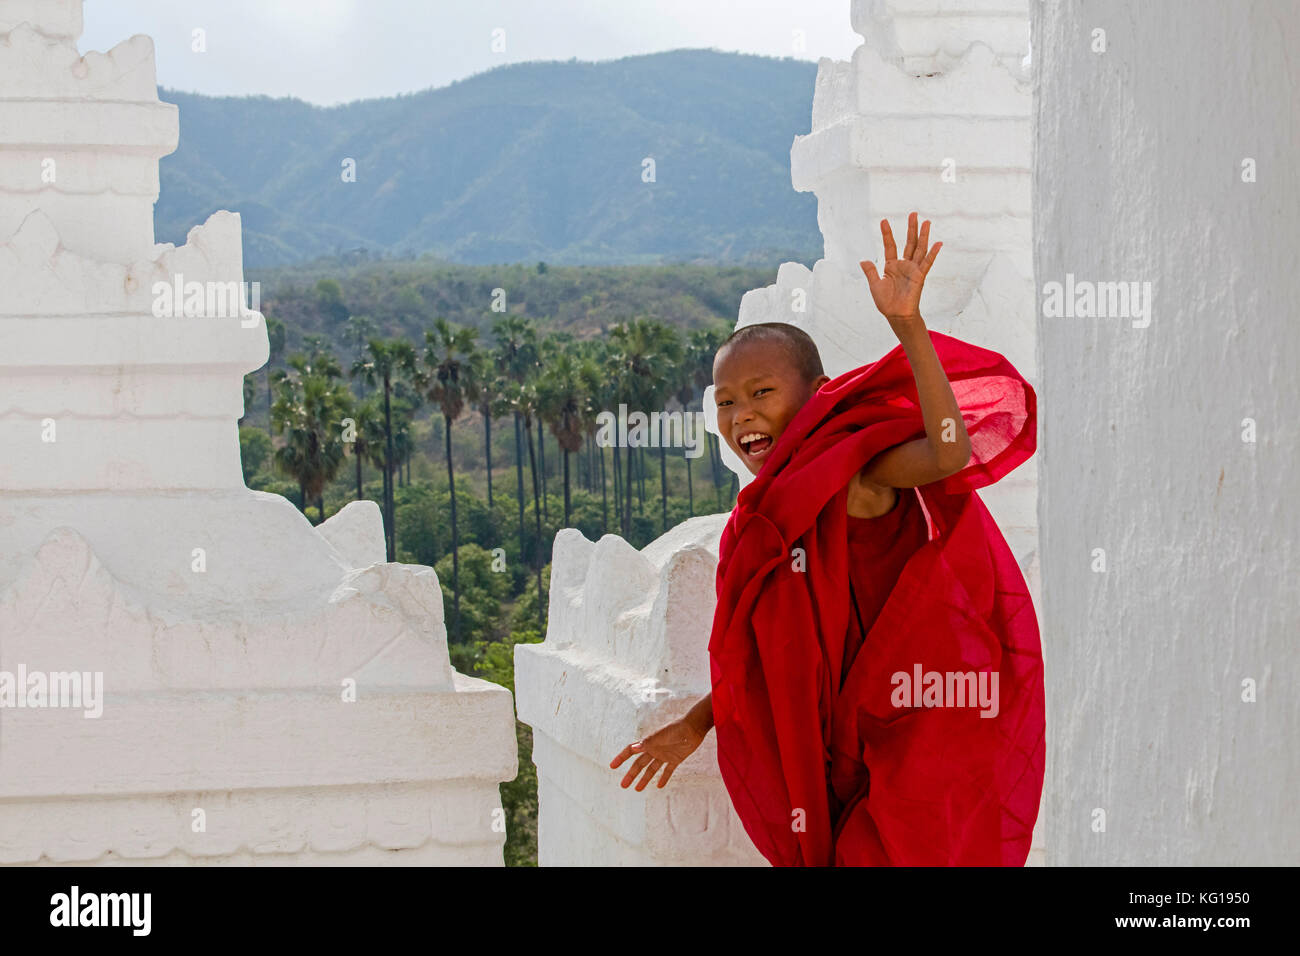 Happy novice monk smiling in the Hsinbyume pagoda / Myatheindan pagoda, temple in Mingun near Mandalay in Sagaing - Stock Image